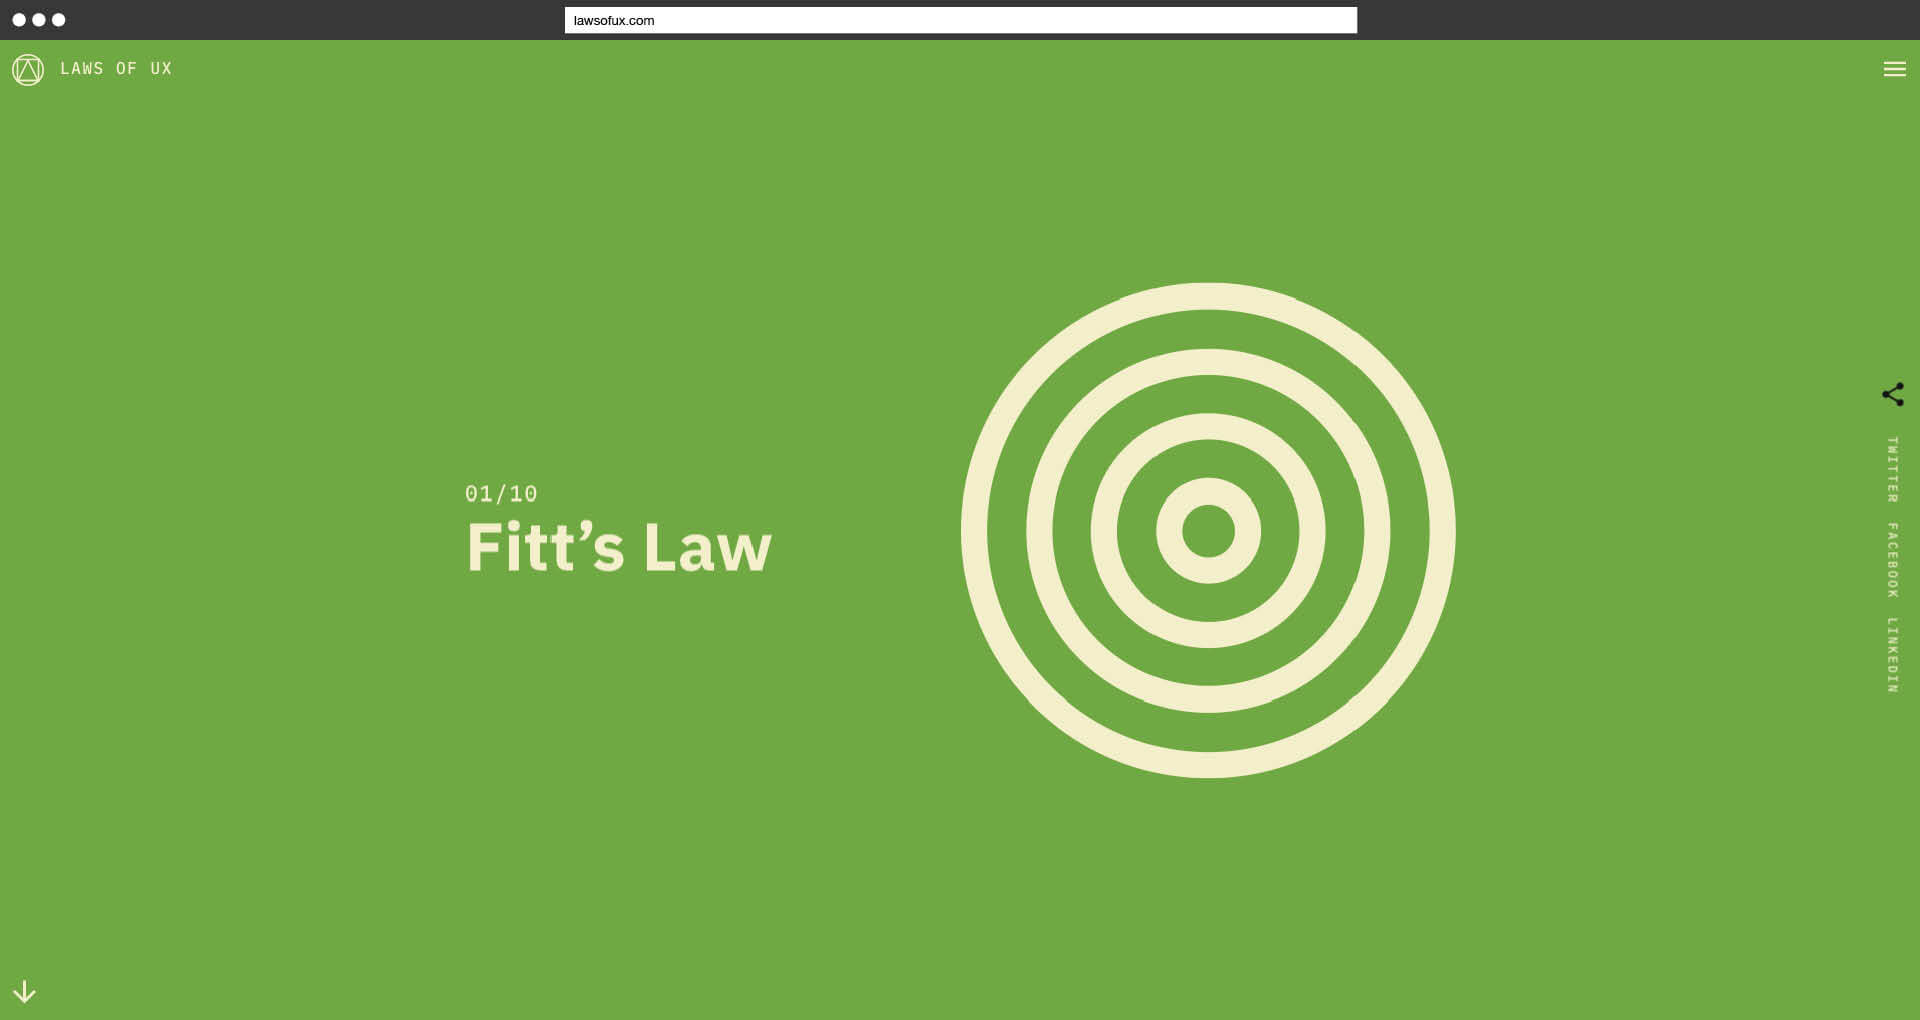 Laws of UX Jon Yablonski Fitt's Law Detail